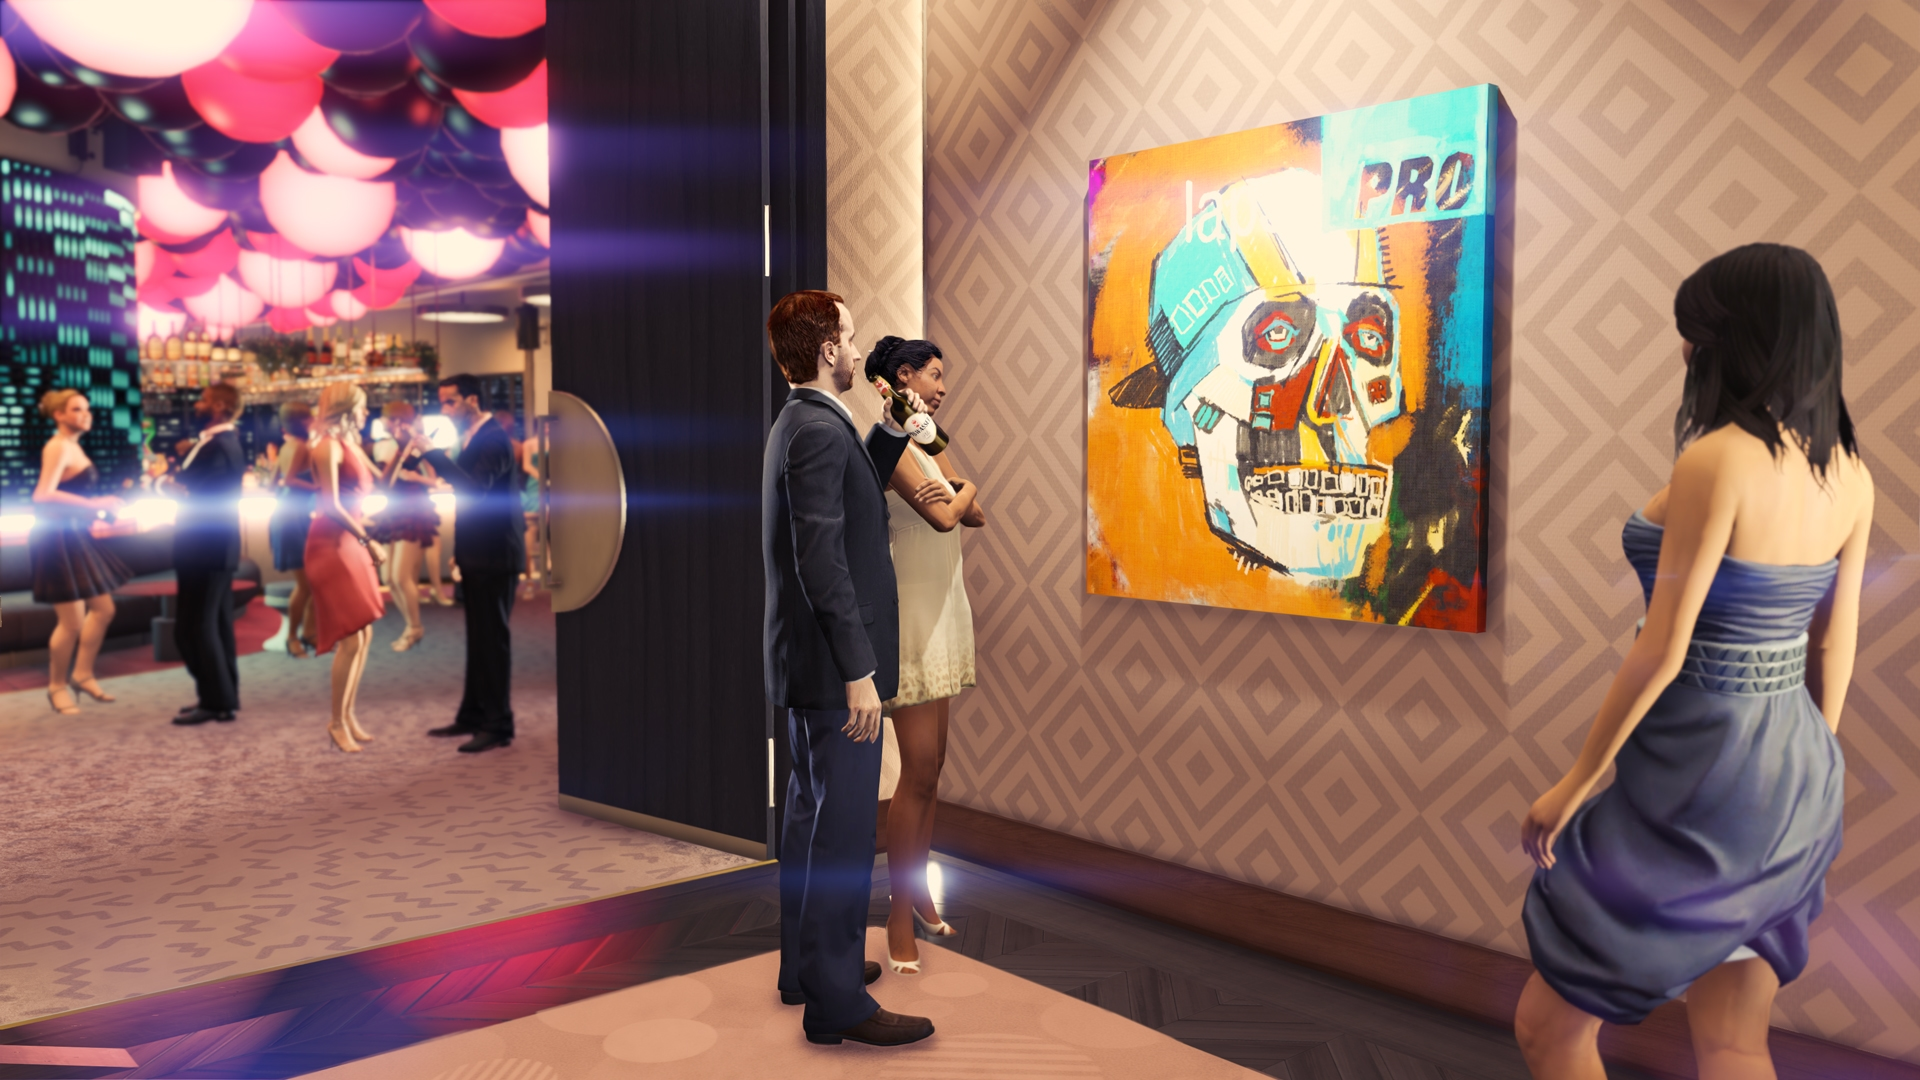 Grand Opening: The Diamond Casino & Resort is Now Open - Rockstar Games